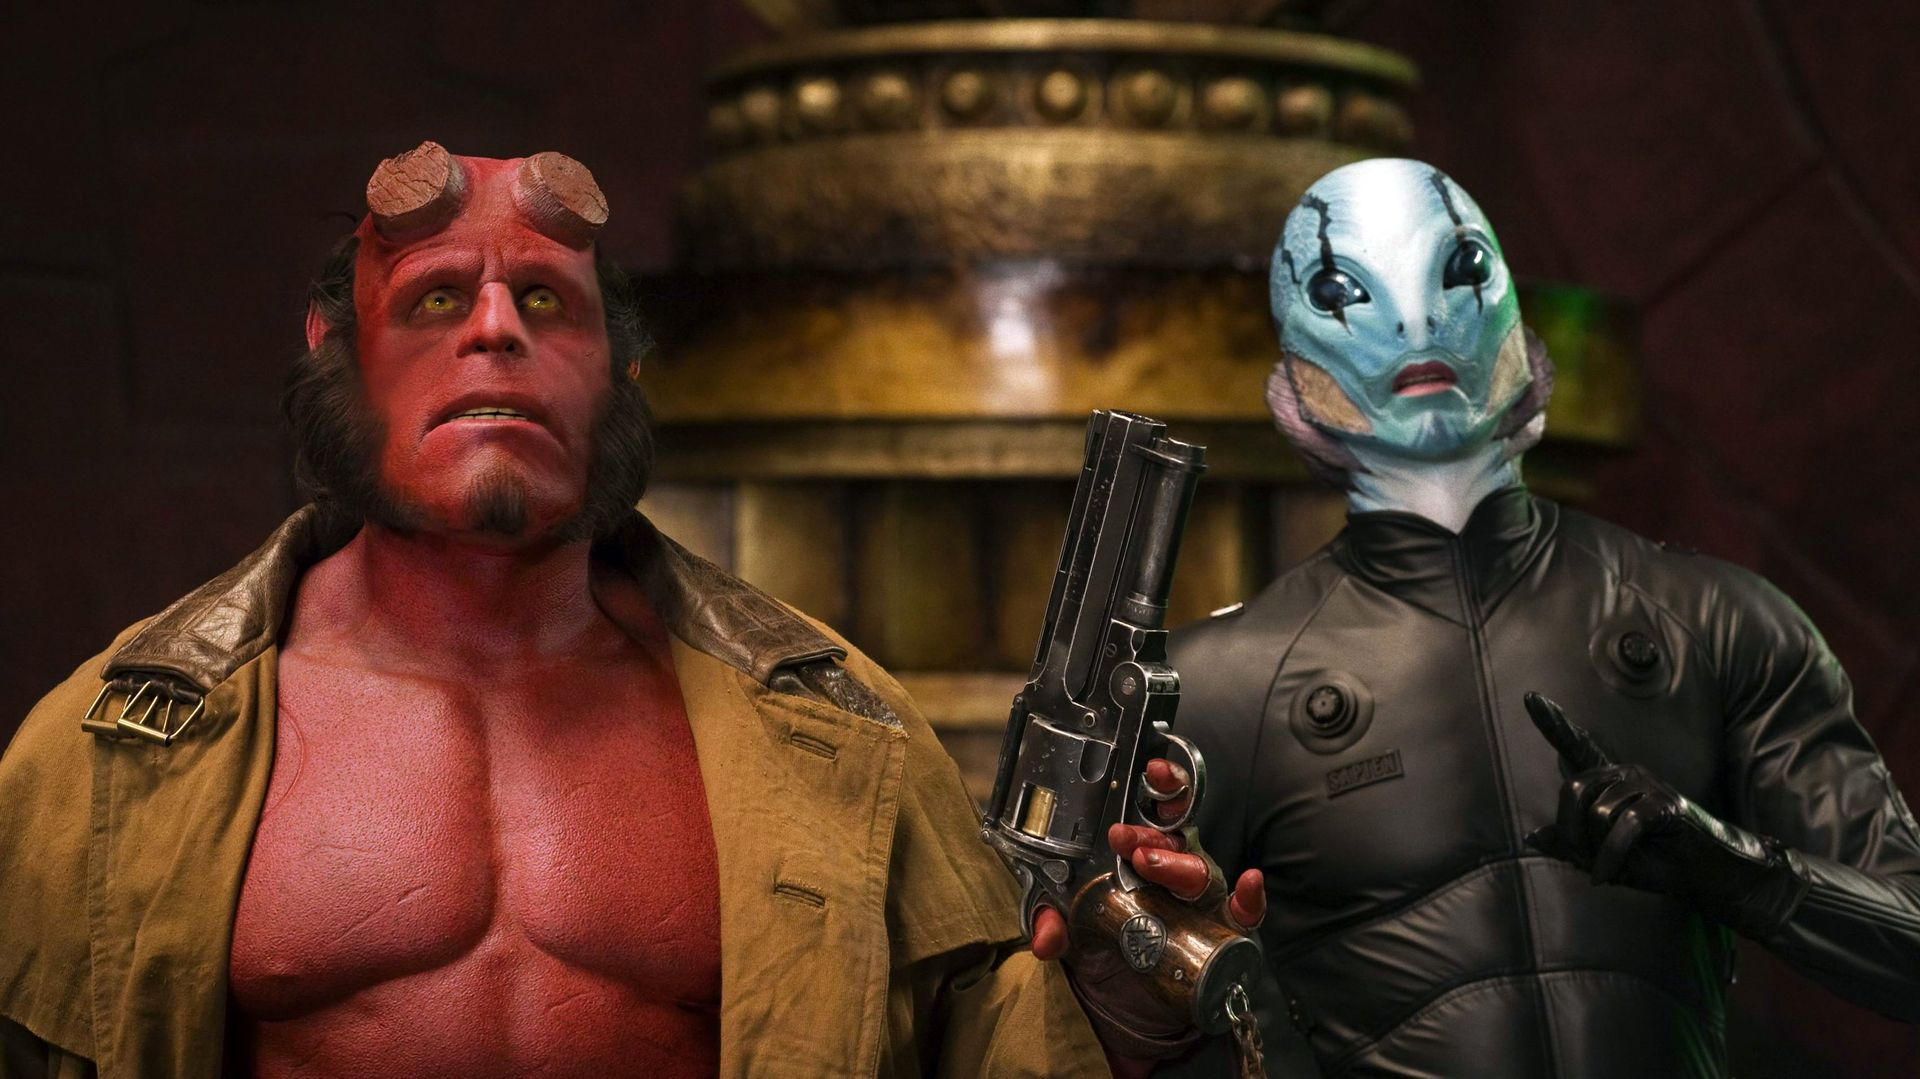 (l to r) Hellboy (Ron Perlman) and Abe Sapien (Doug Jones) in Hellboy II: The Golden Army (2008)